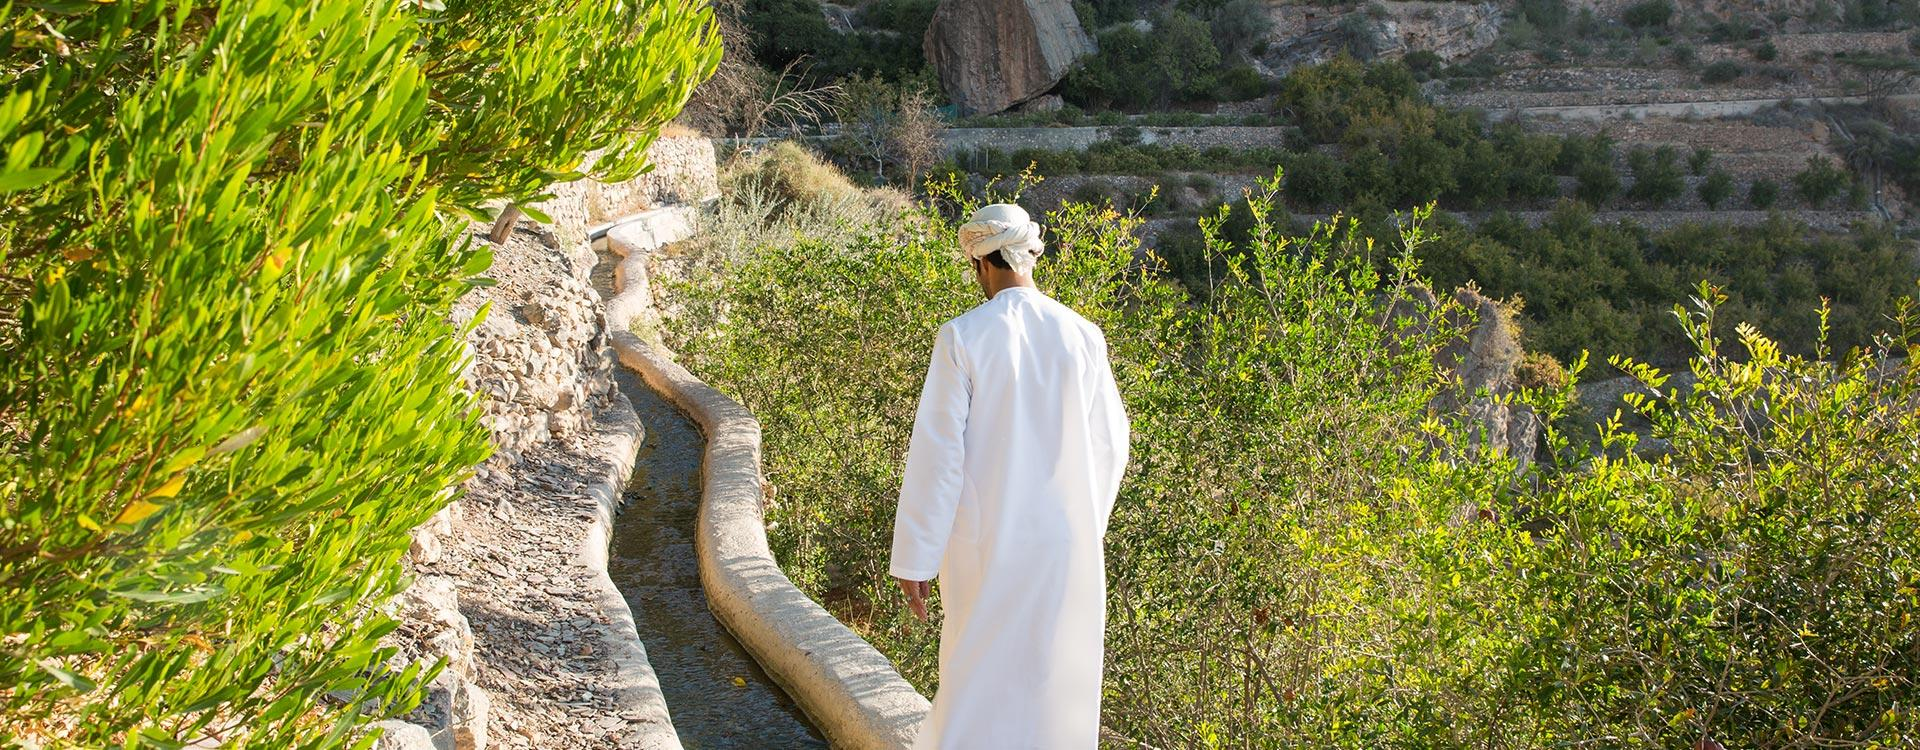 AN-Jabal-Al-Akhdar _ Drei-Village-Kulture-Tour